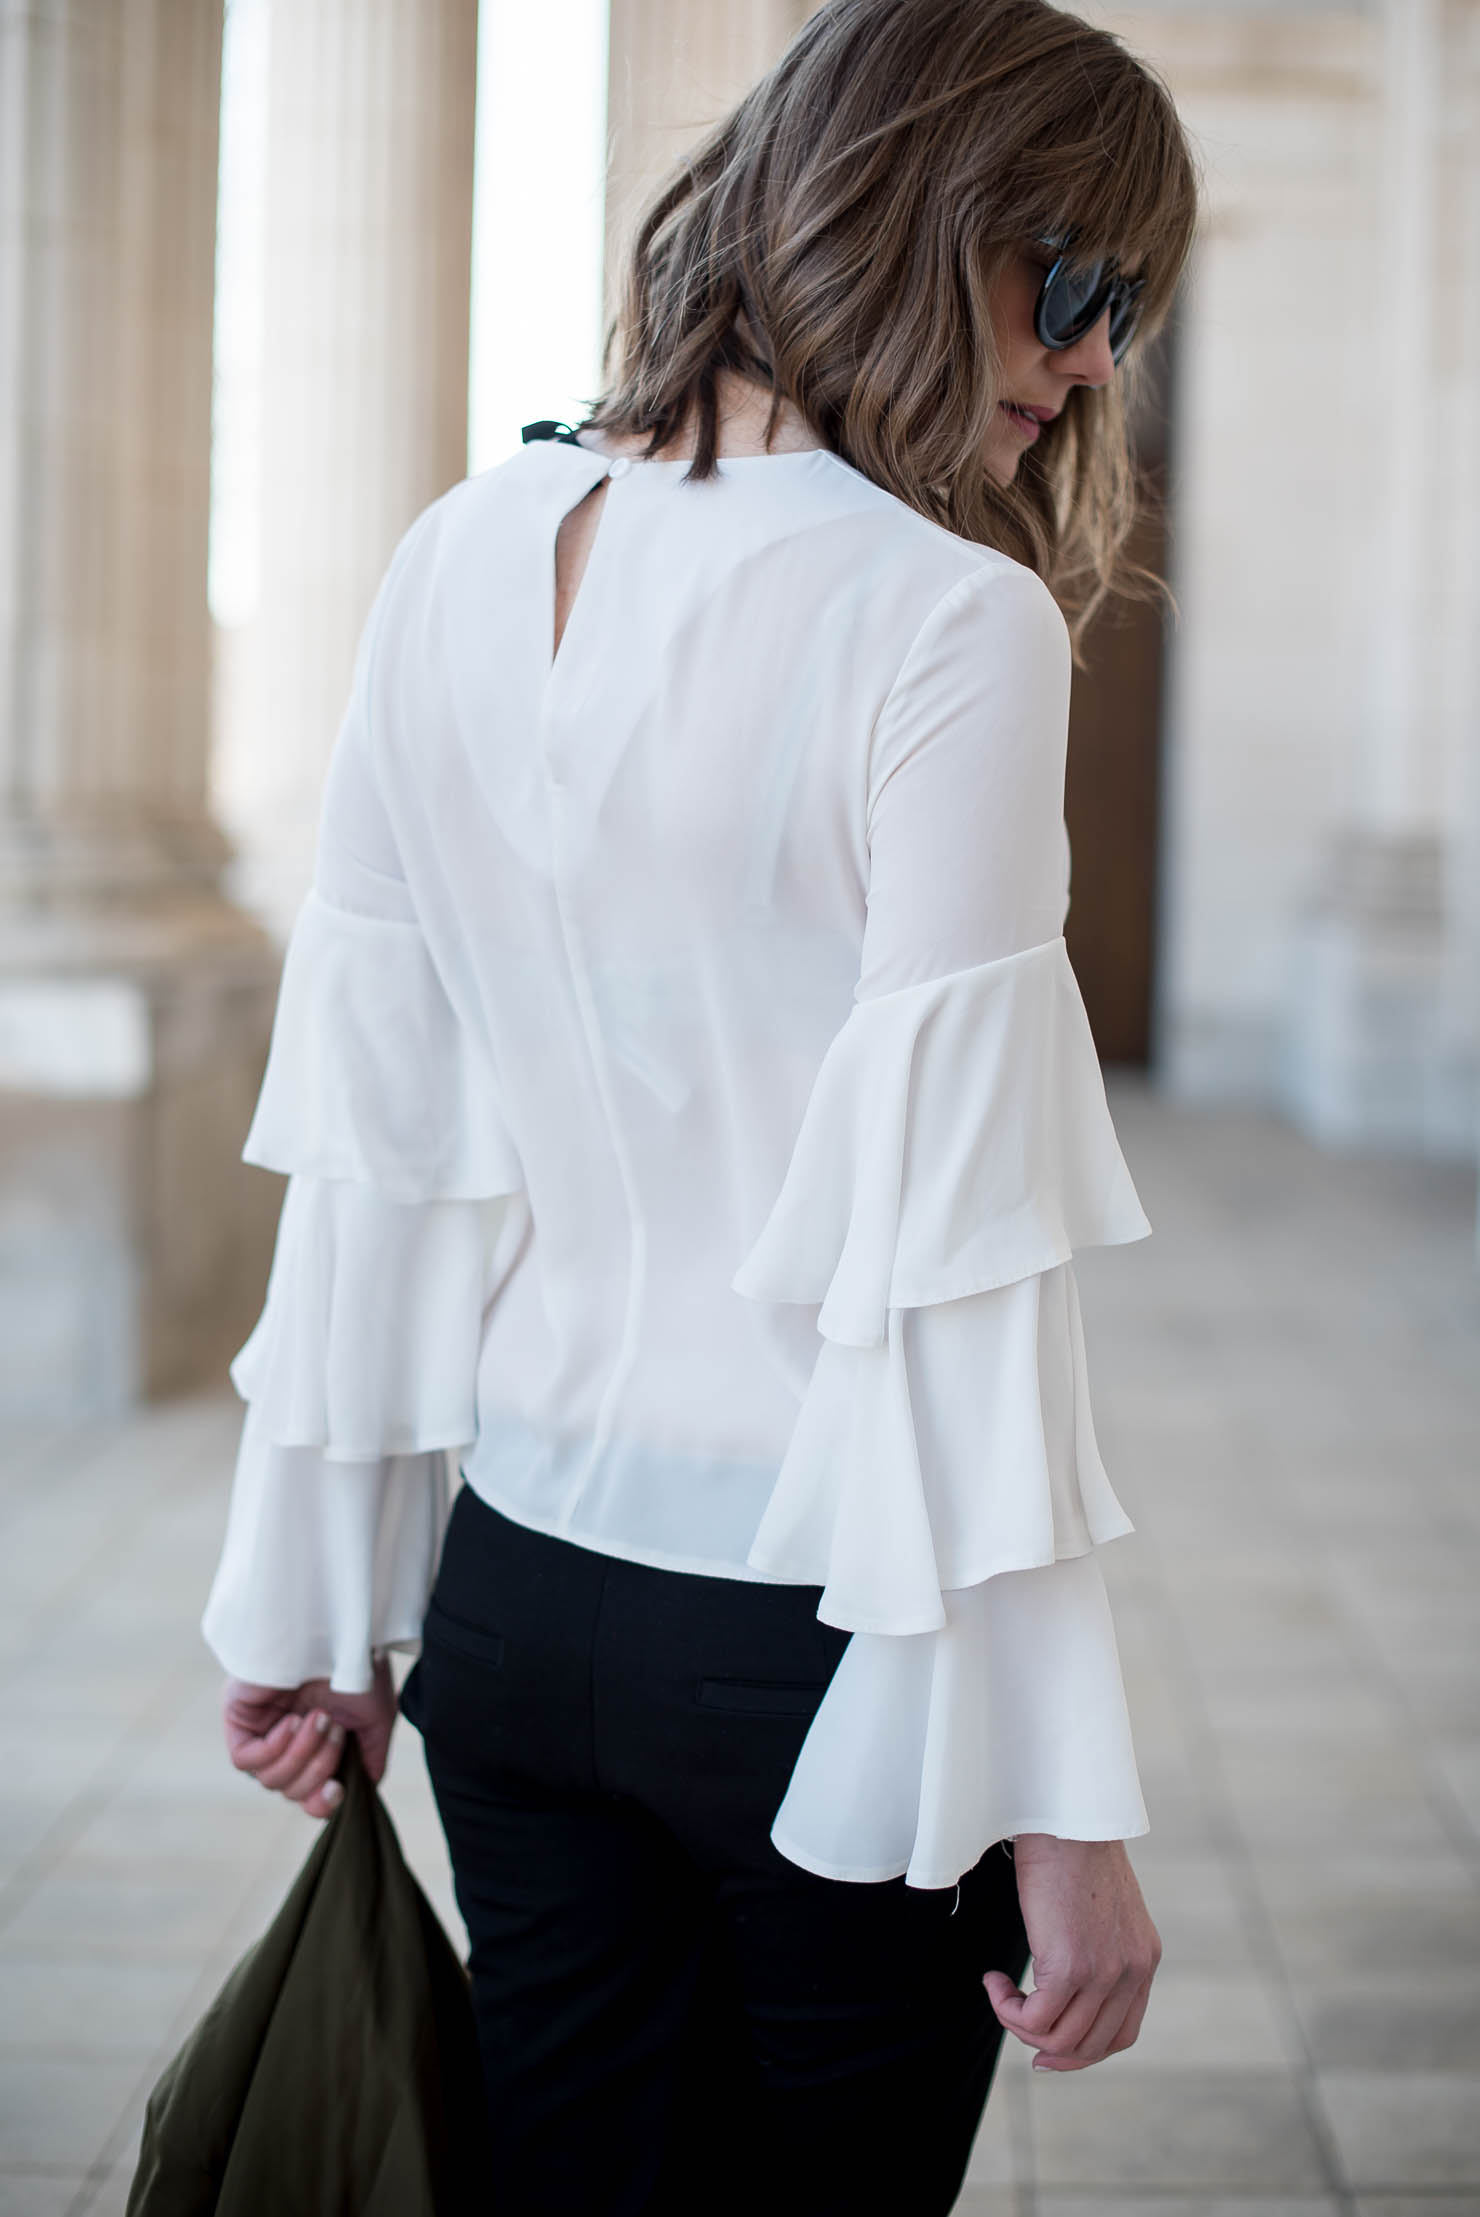 styling-a-ruffle-sleeve-blouse-springs-hottest-trend-bomber-jacket-spring-fashion-2017-zara-snakeskin-pumps